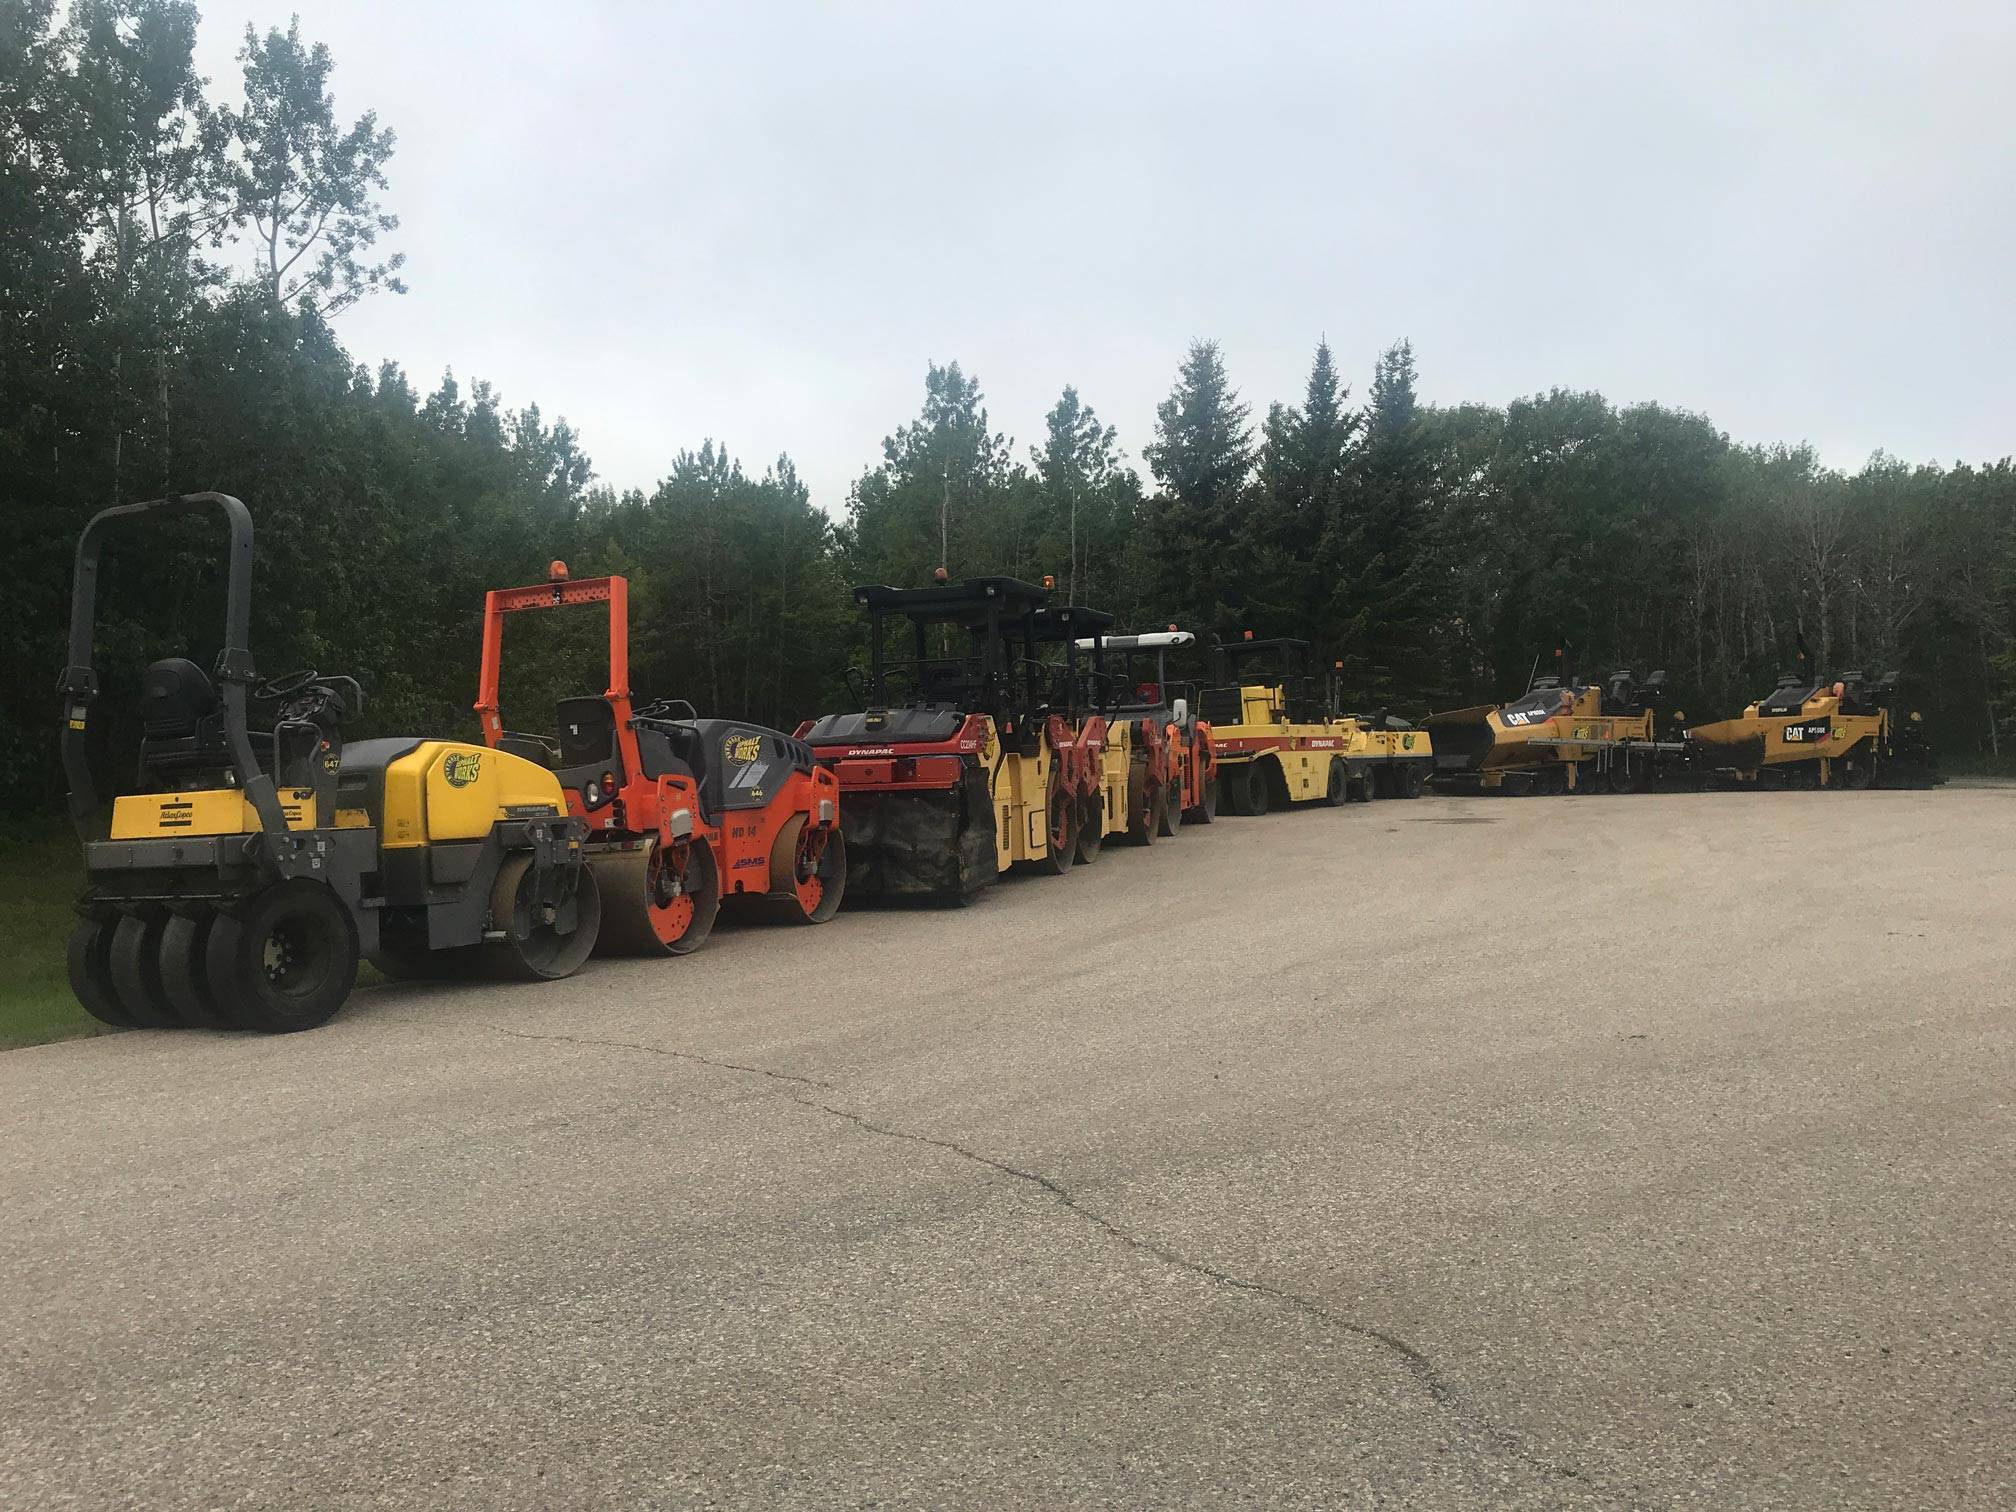 paving equipment in Bearspaw, Alberta